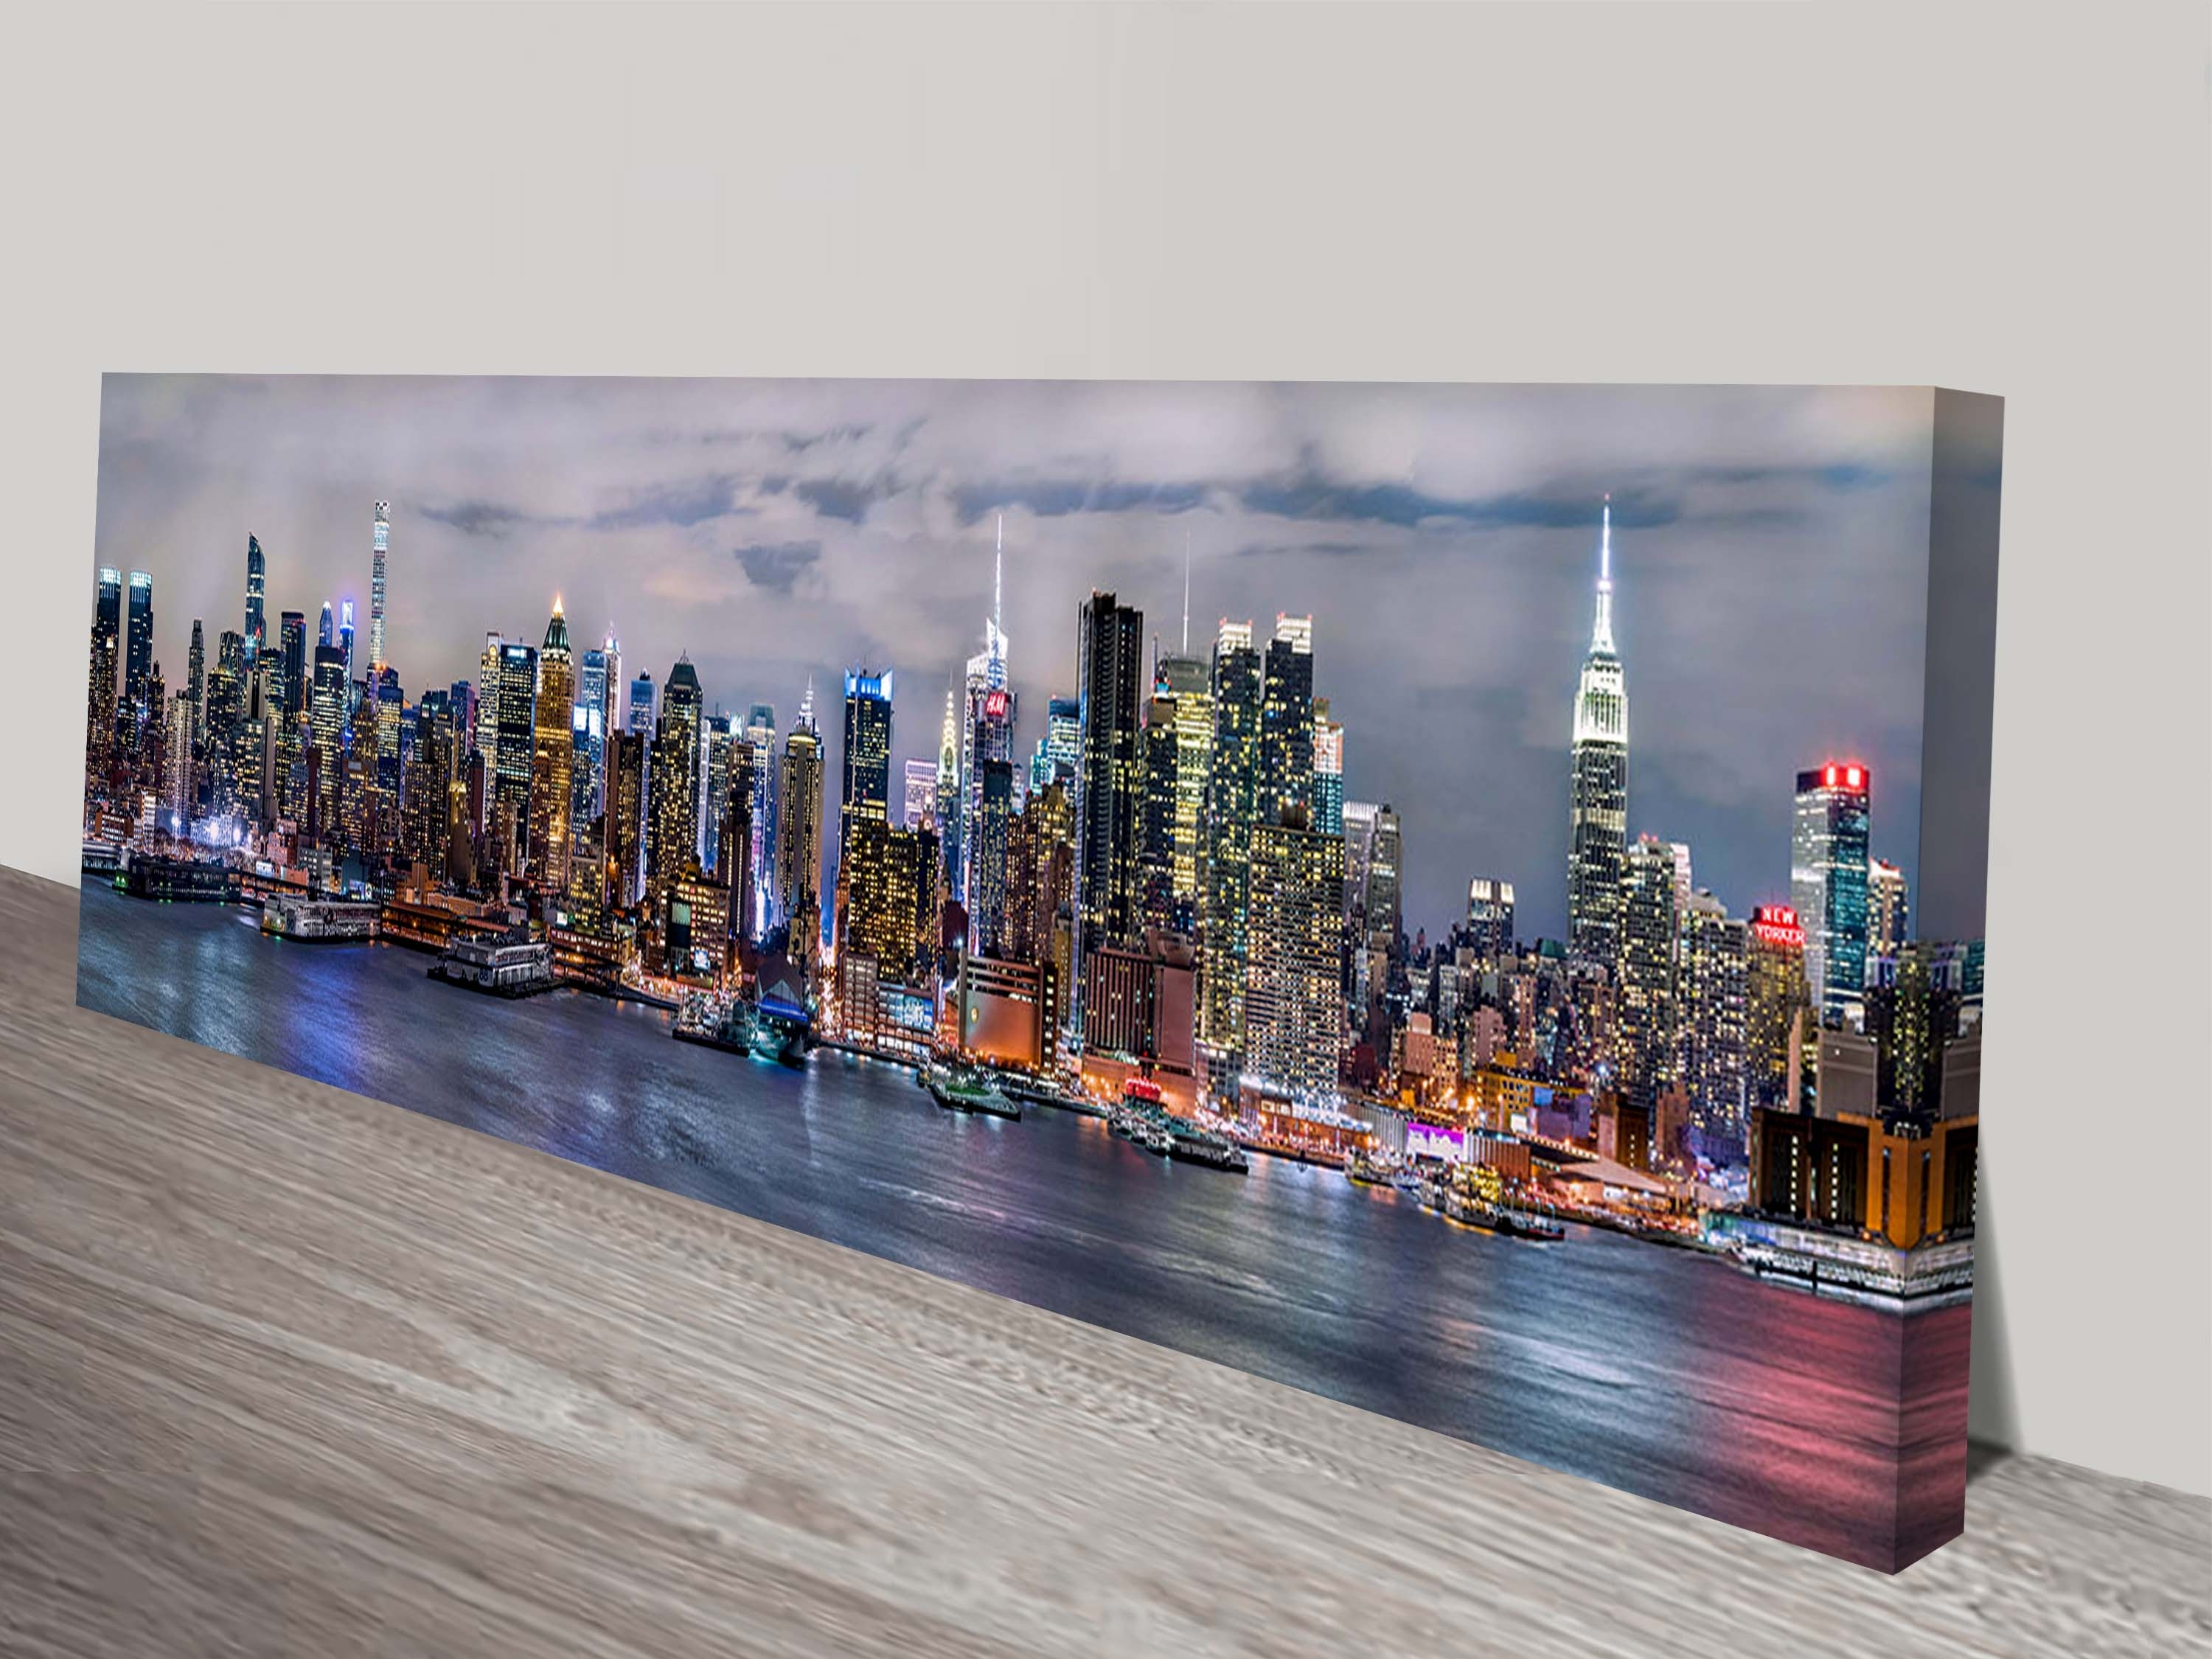 Canvas Art Melbourne, Star Wars Wall Art Pictures Australia For Best And Newest Melbourne Abstract Wall Art (View 1 of 20)